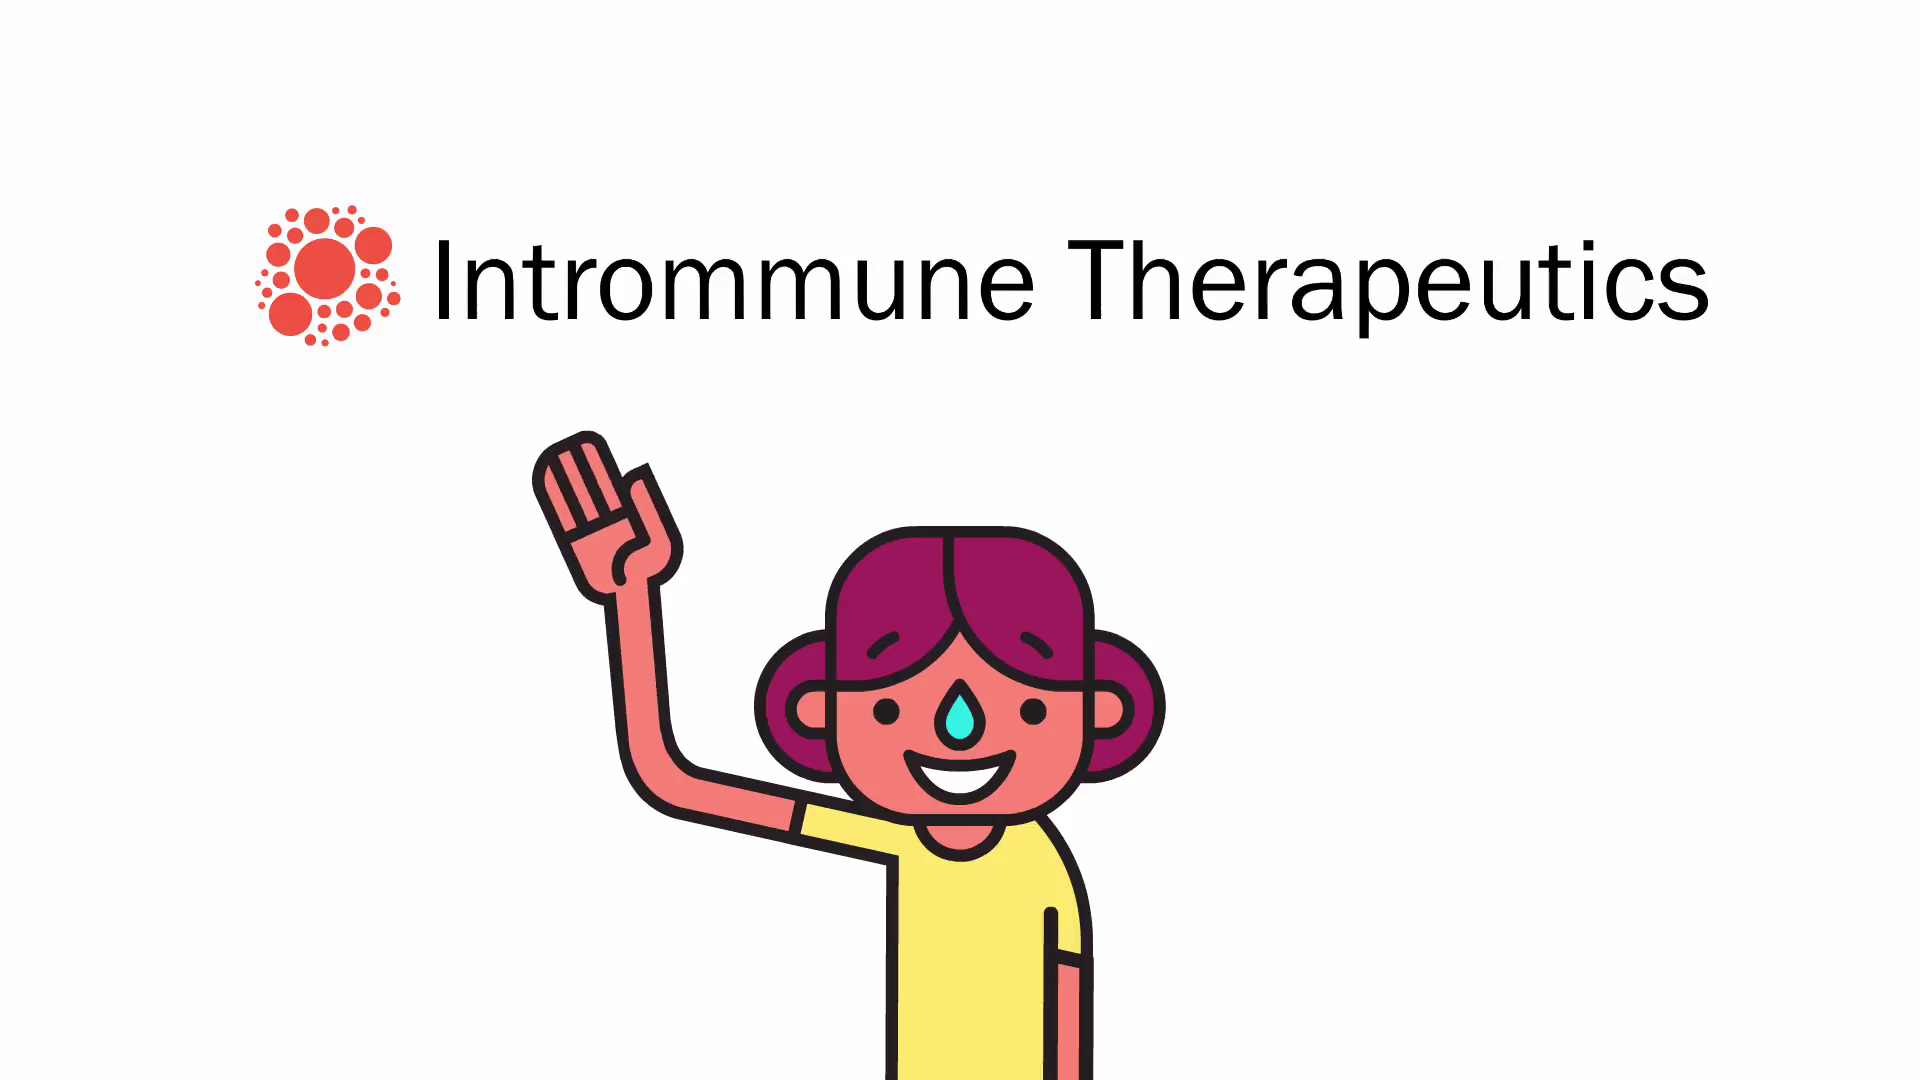 Intrommune Therapeutics